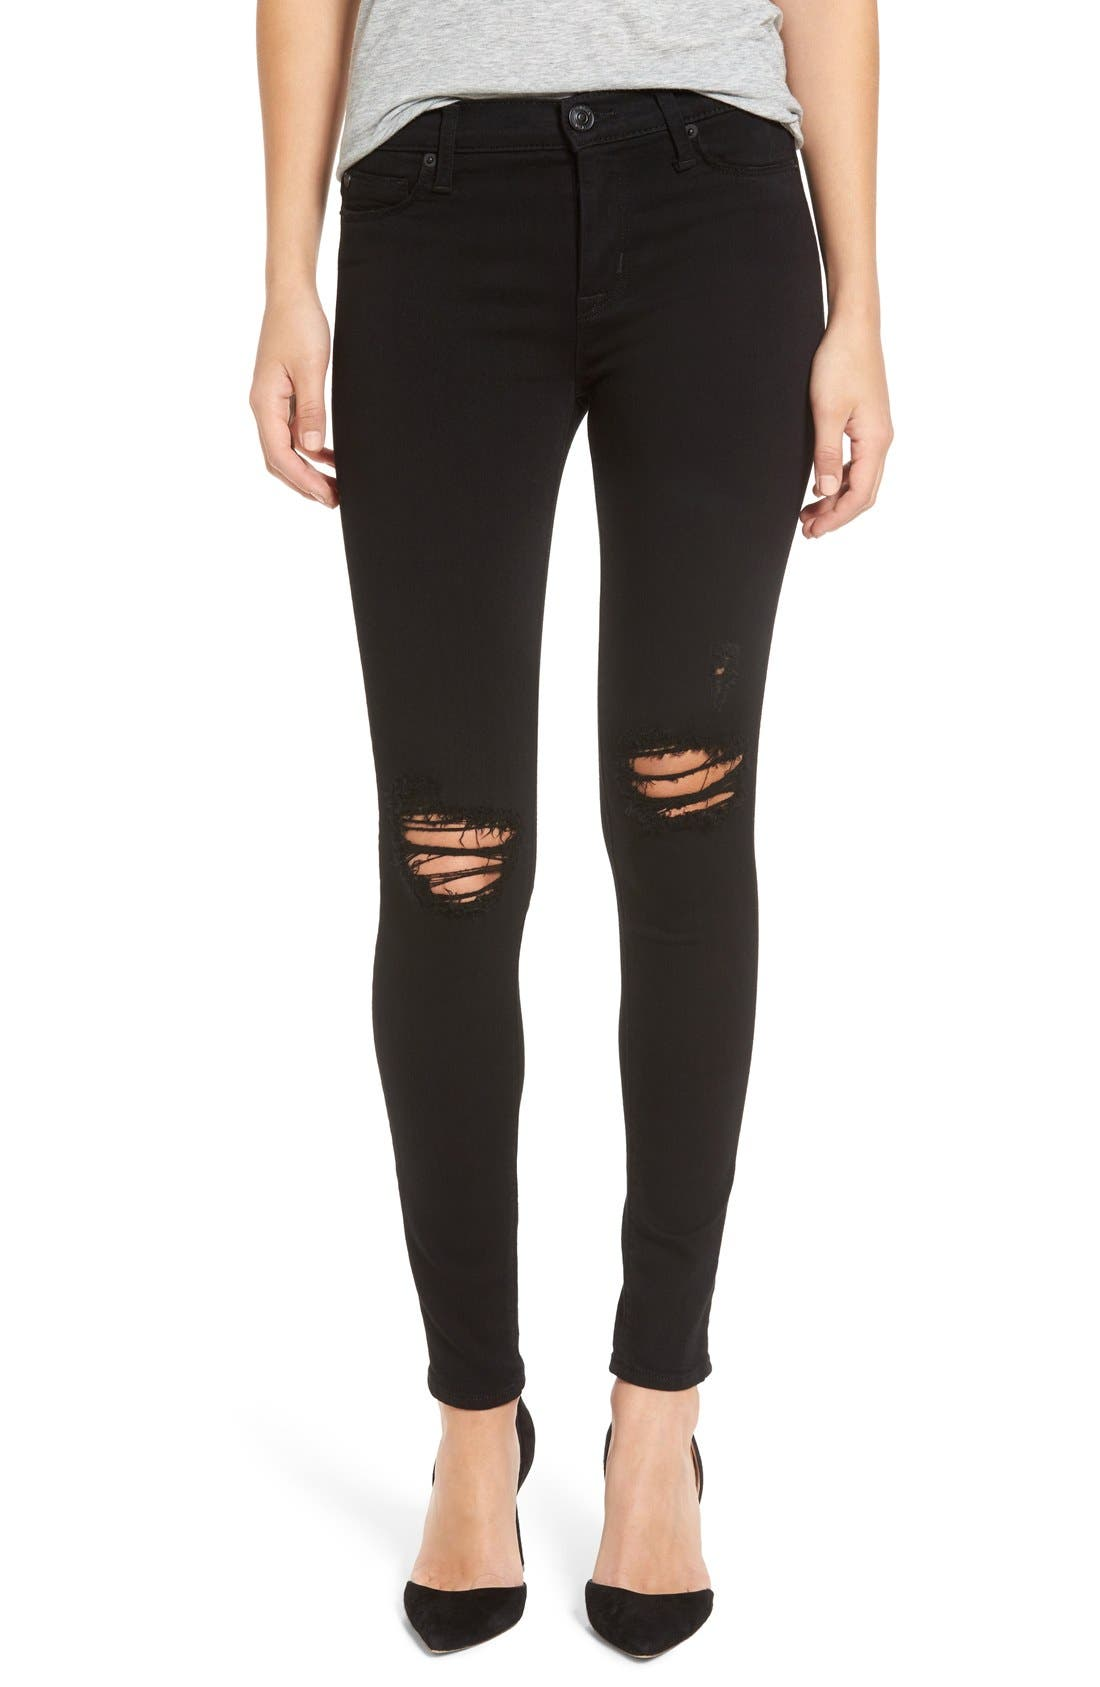 Alternate Image 1 Selected - Hudson Jeans 'Nico' Skinny Jeans (Ravage)